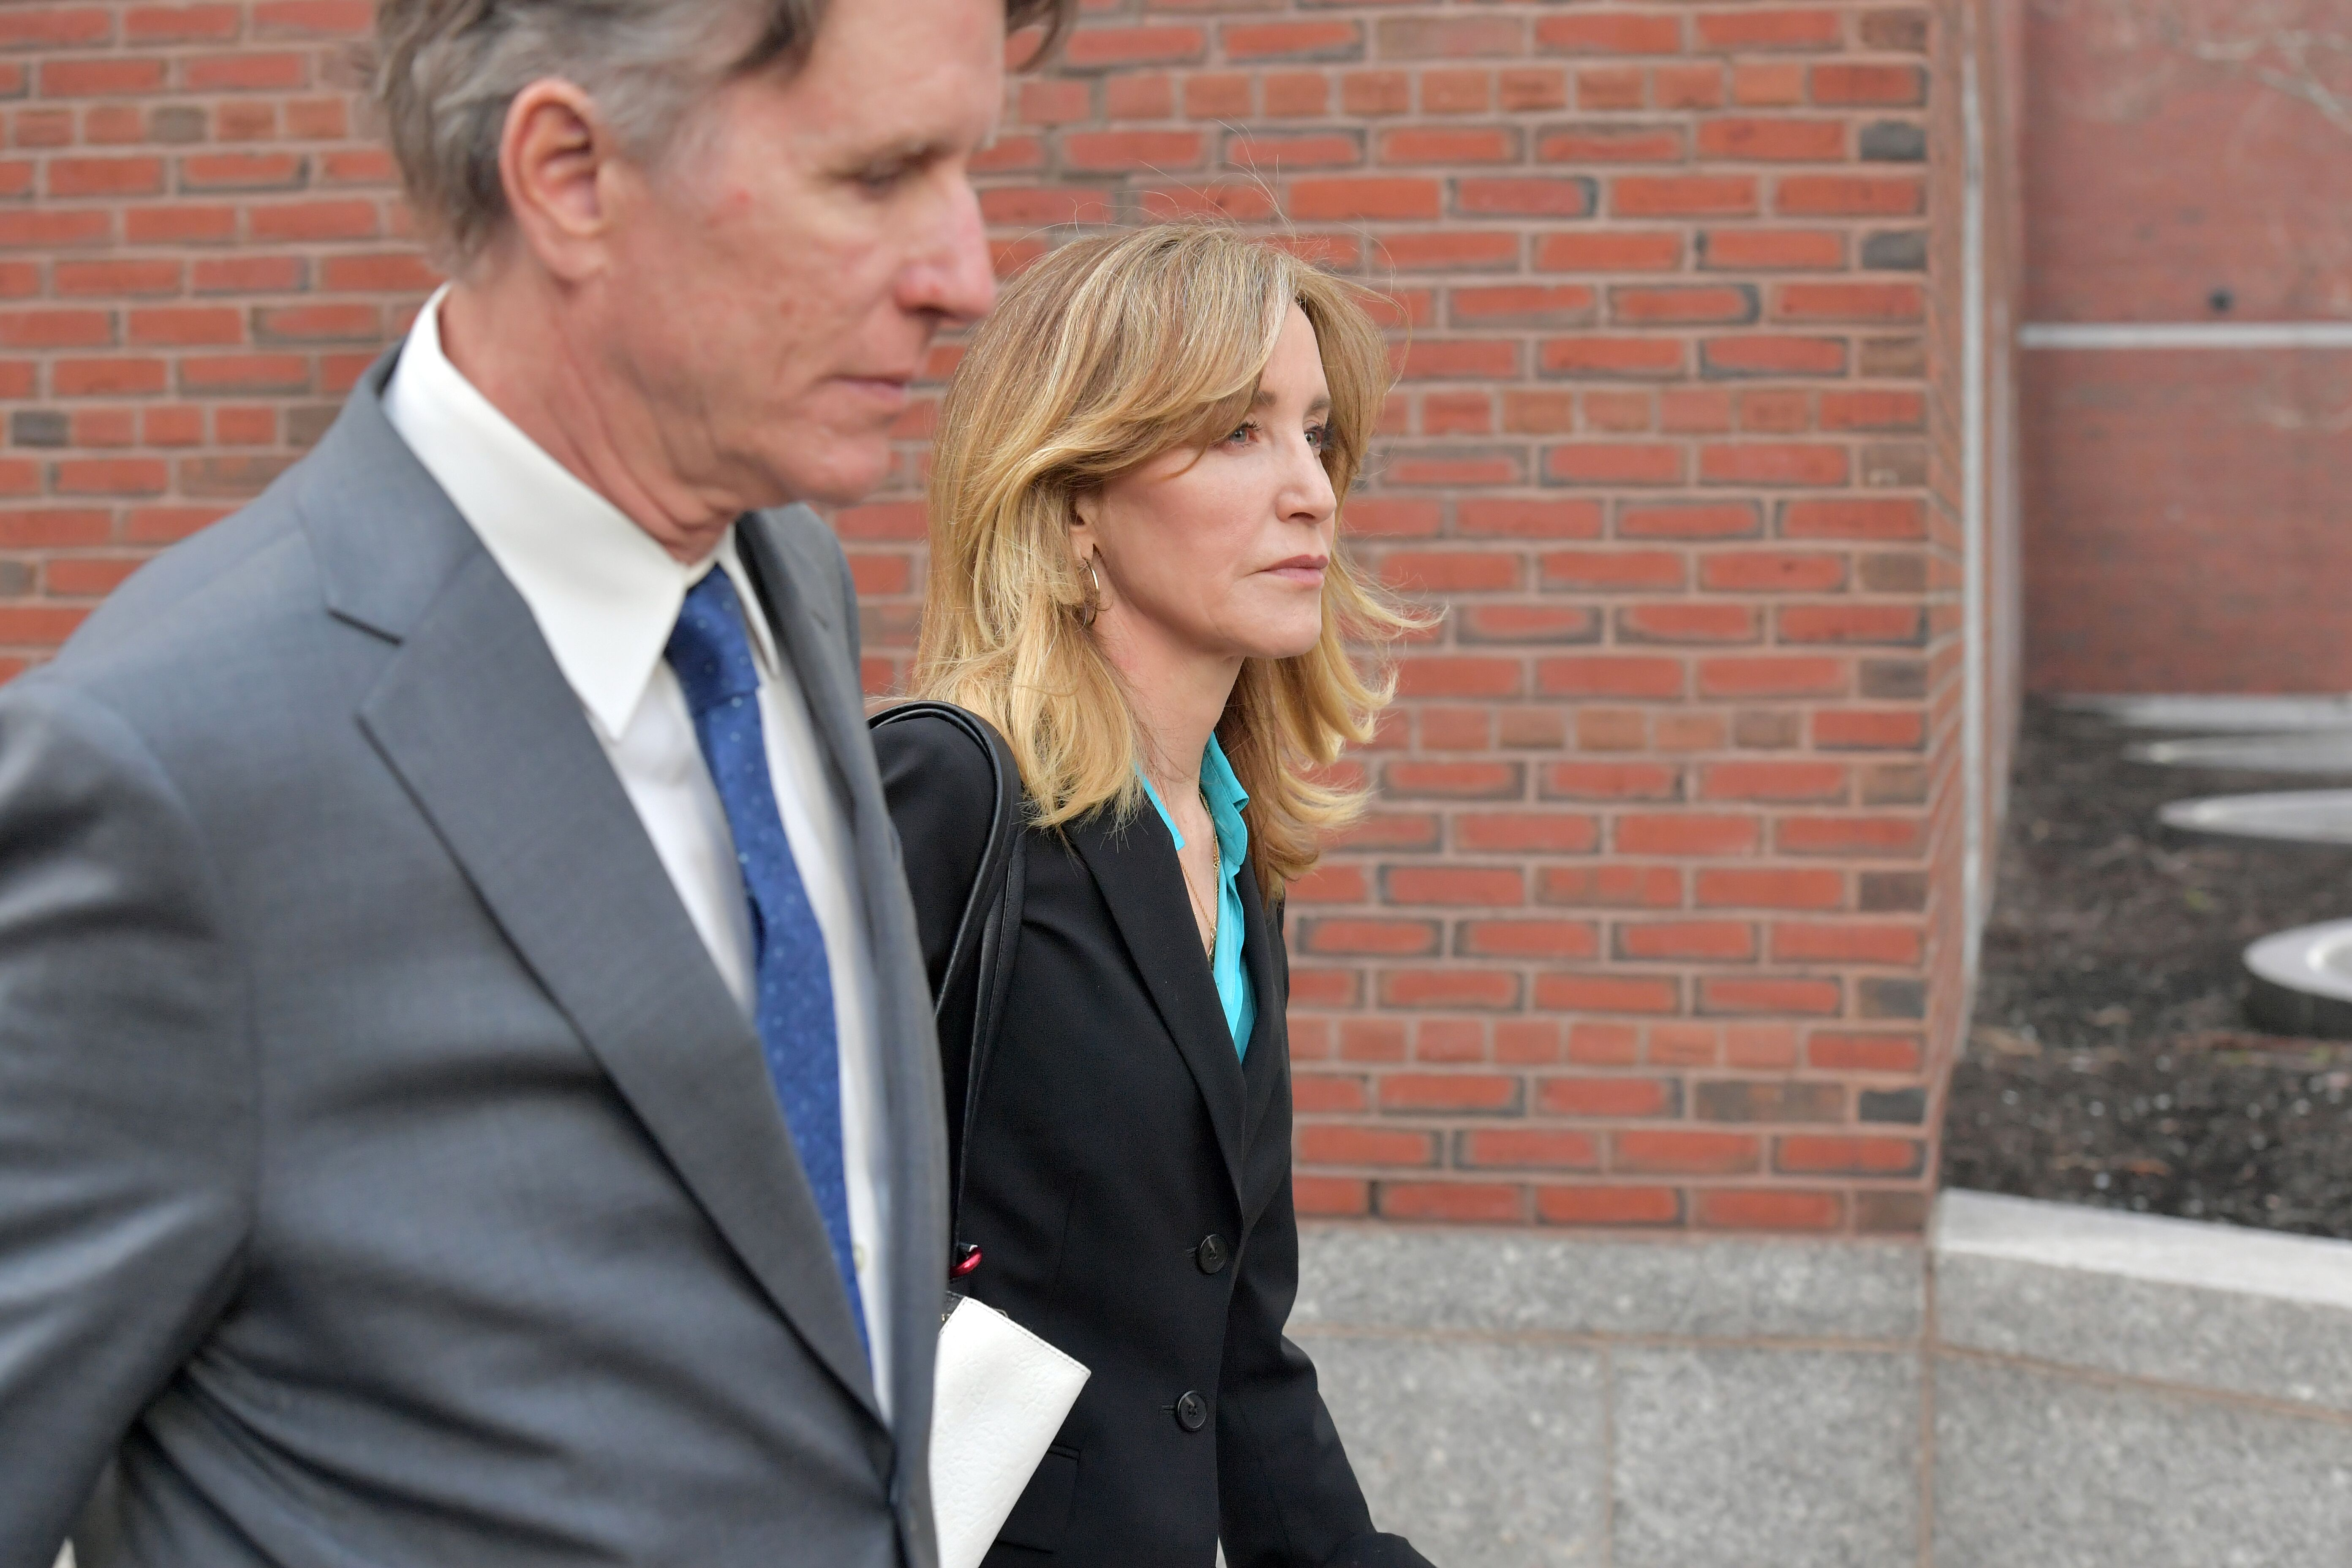 Felicity Huffman at a U.S. Courthouse on April 3, 2019, in Boston, Massachusetts | Photo: Paul Marotta/Getty Images